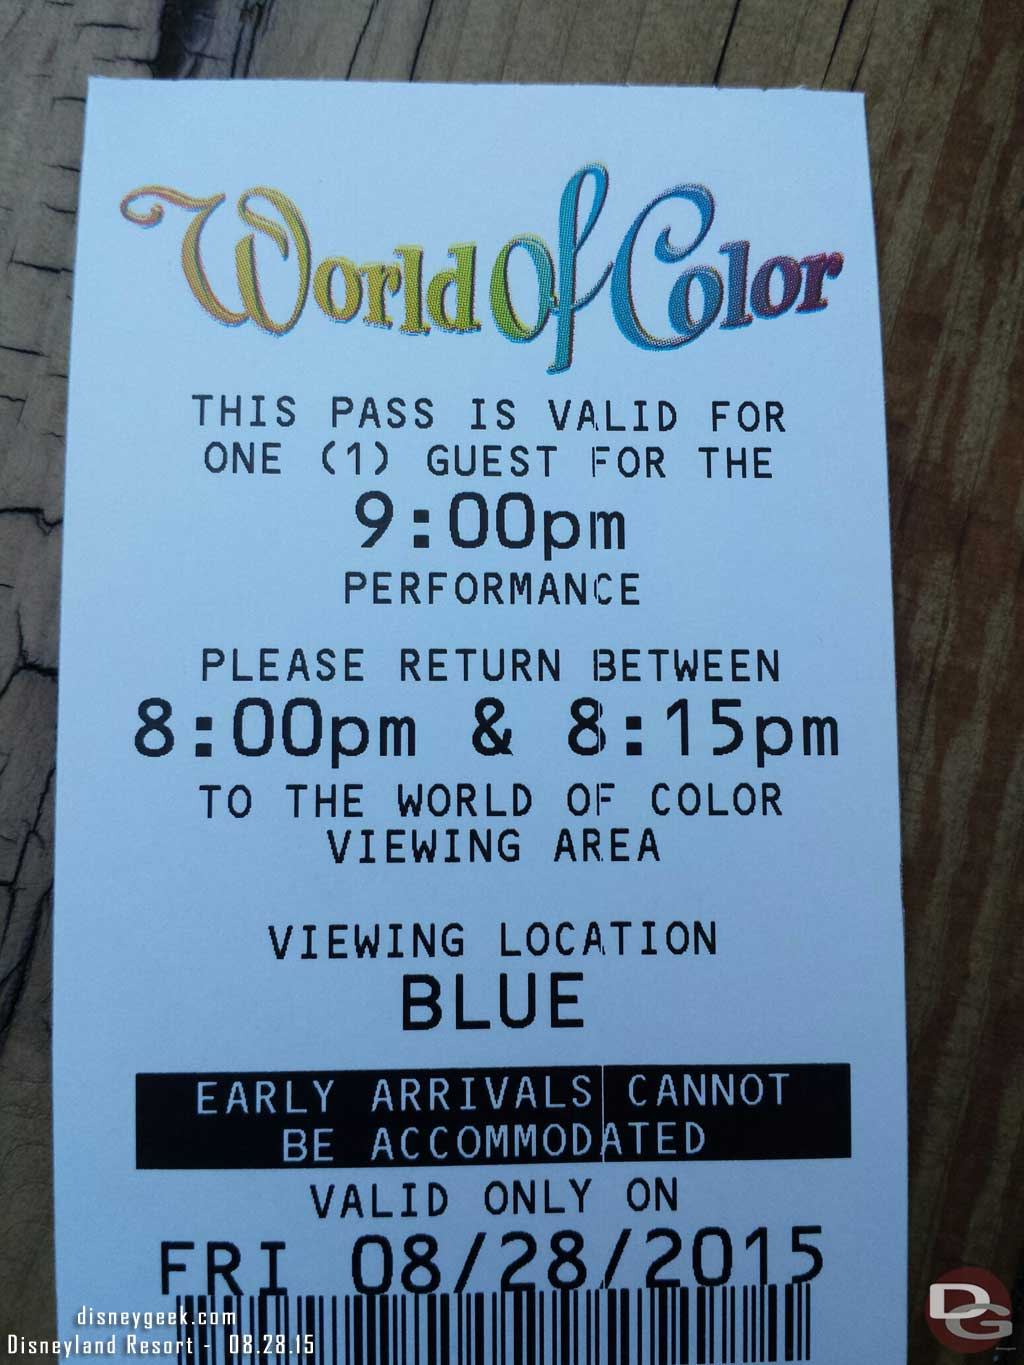 FastPasses for the 1st World of Color – Blue section still available at 1:30pm